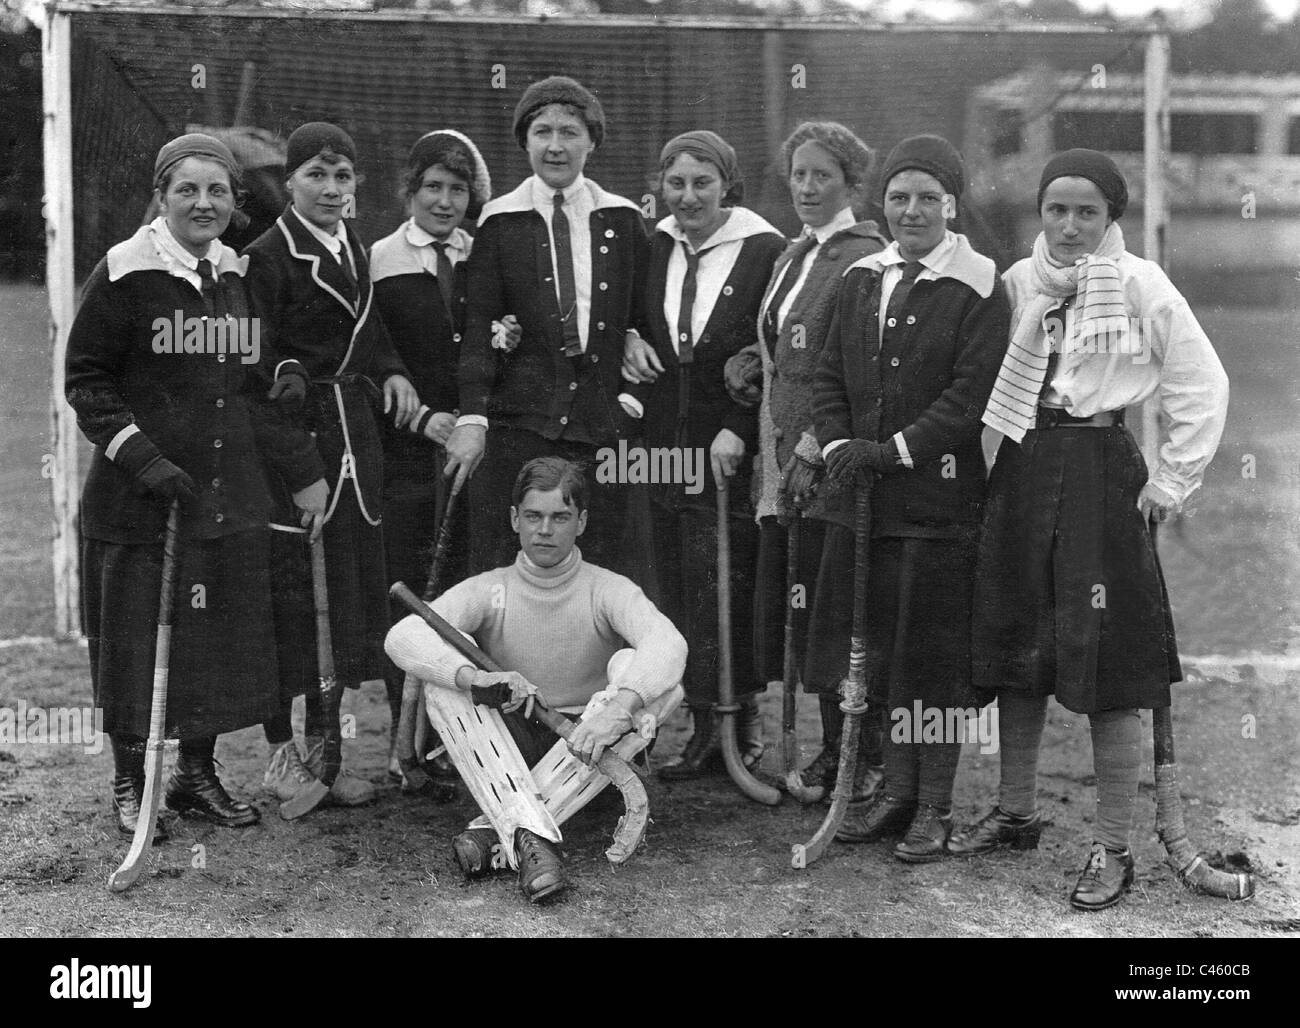 Women's Hockey, 1920 - Stock Image